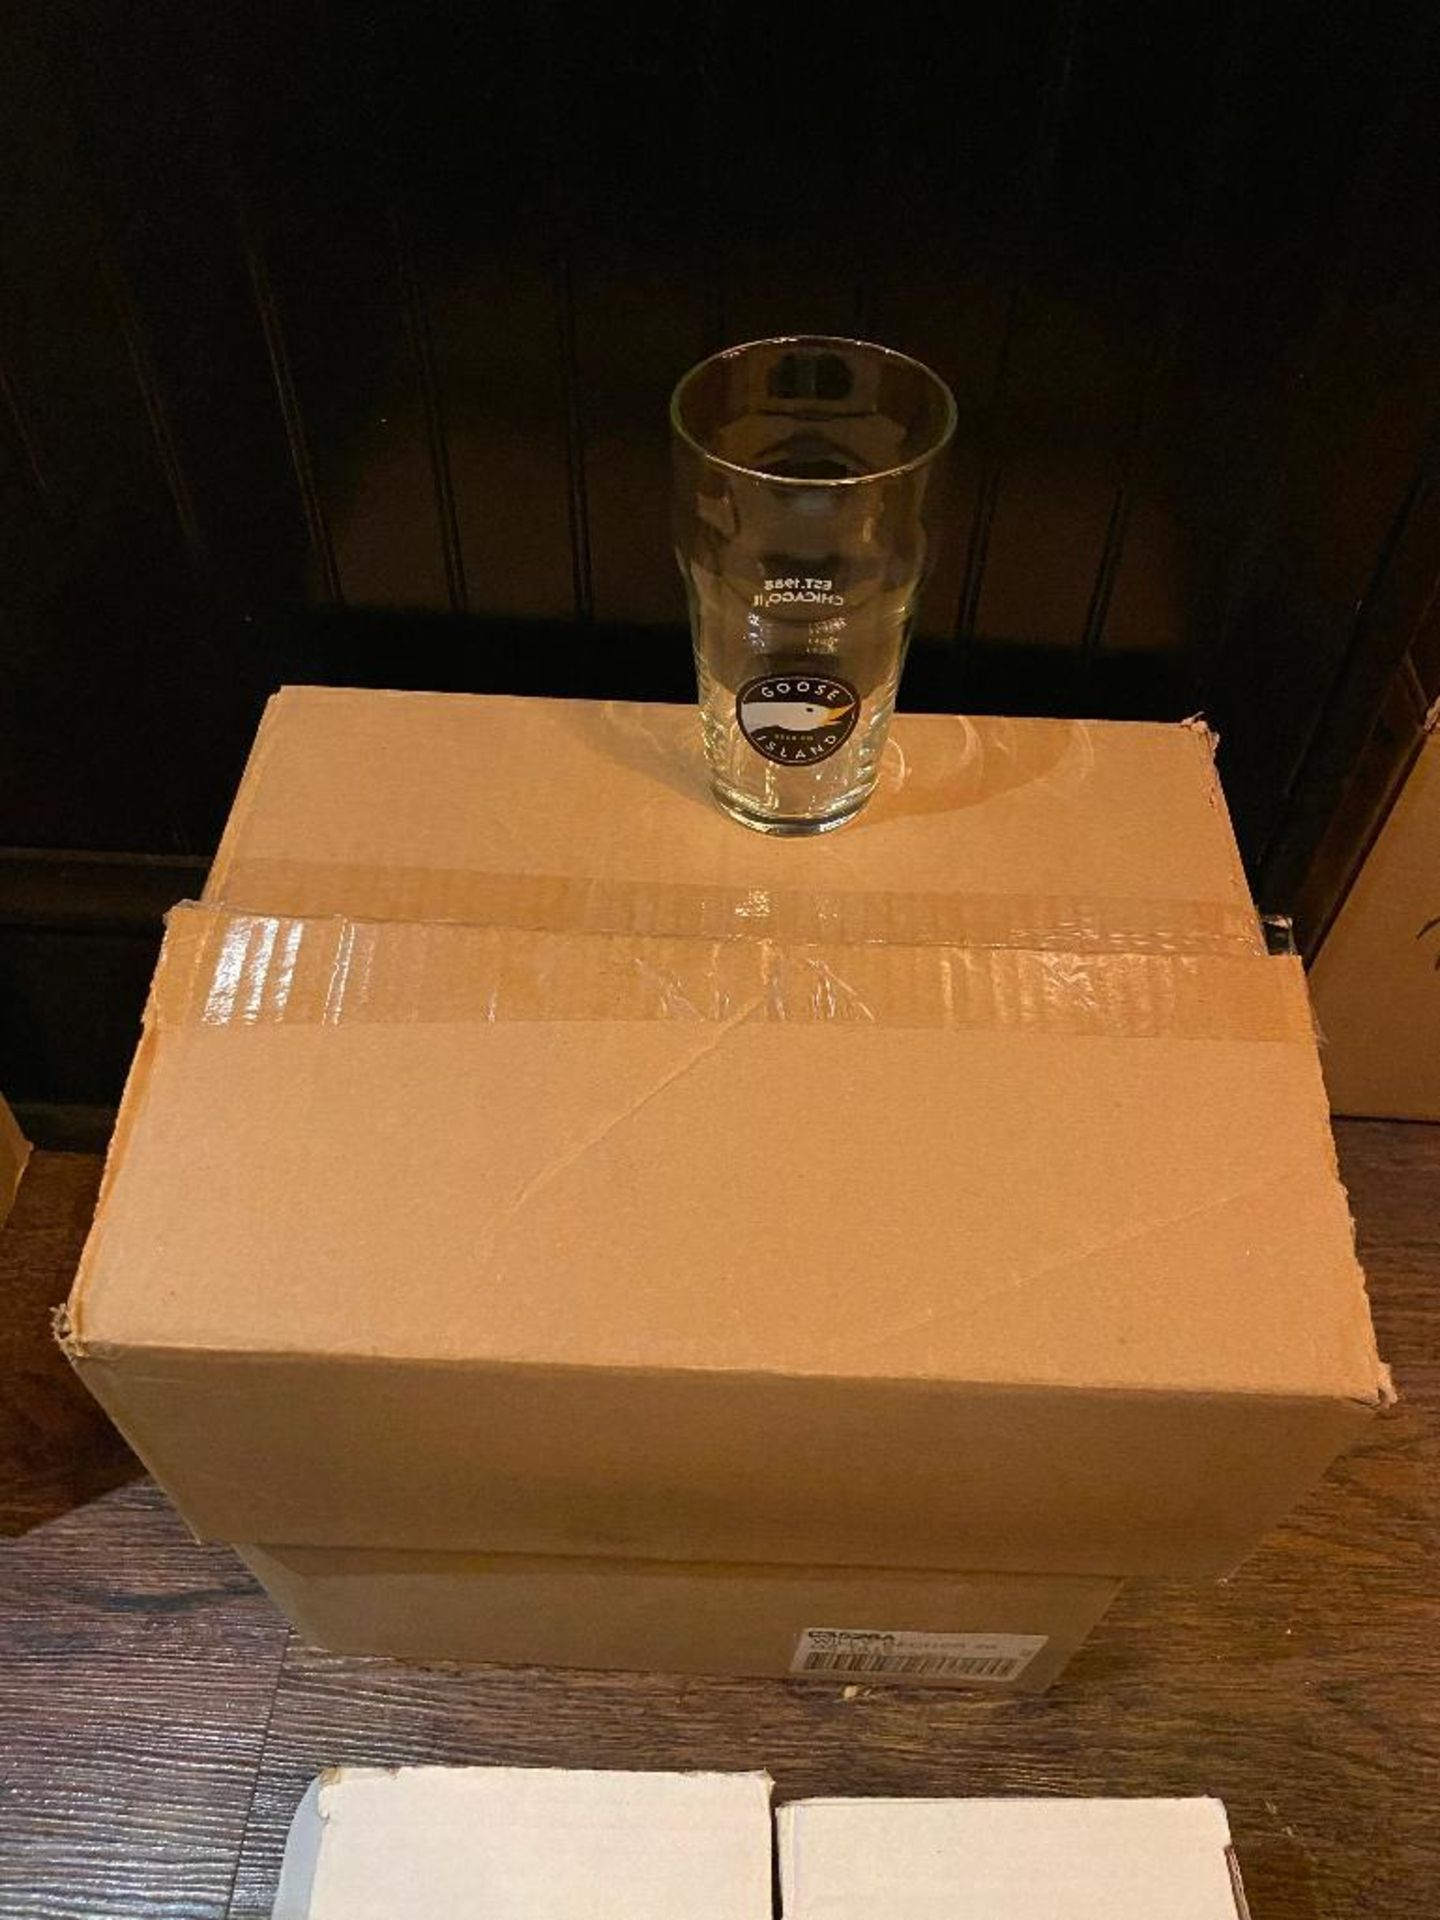 LOT OF (5) BOXES OF ASSORTED BRANDED GLASSES - Image 5 of 6